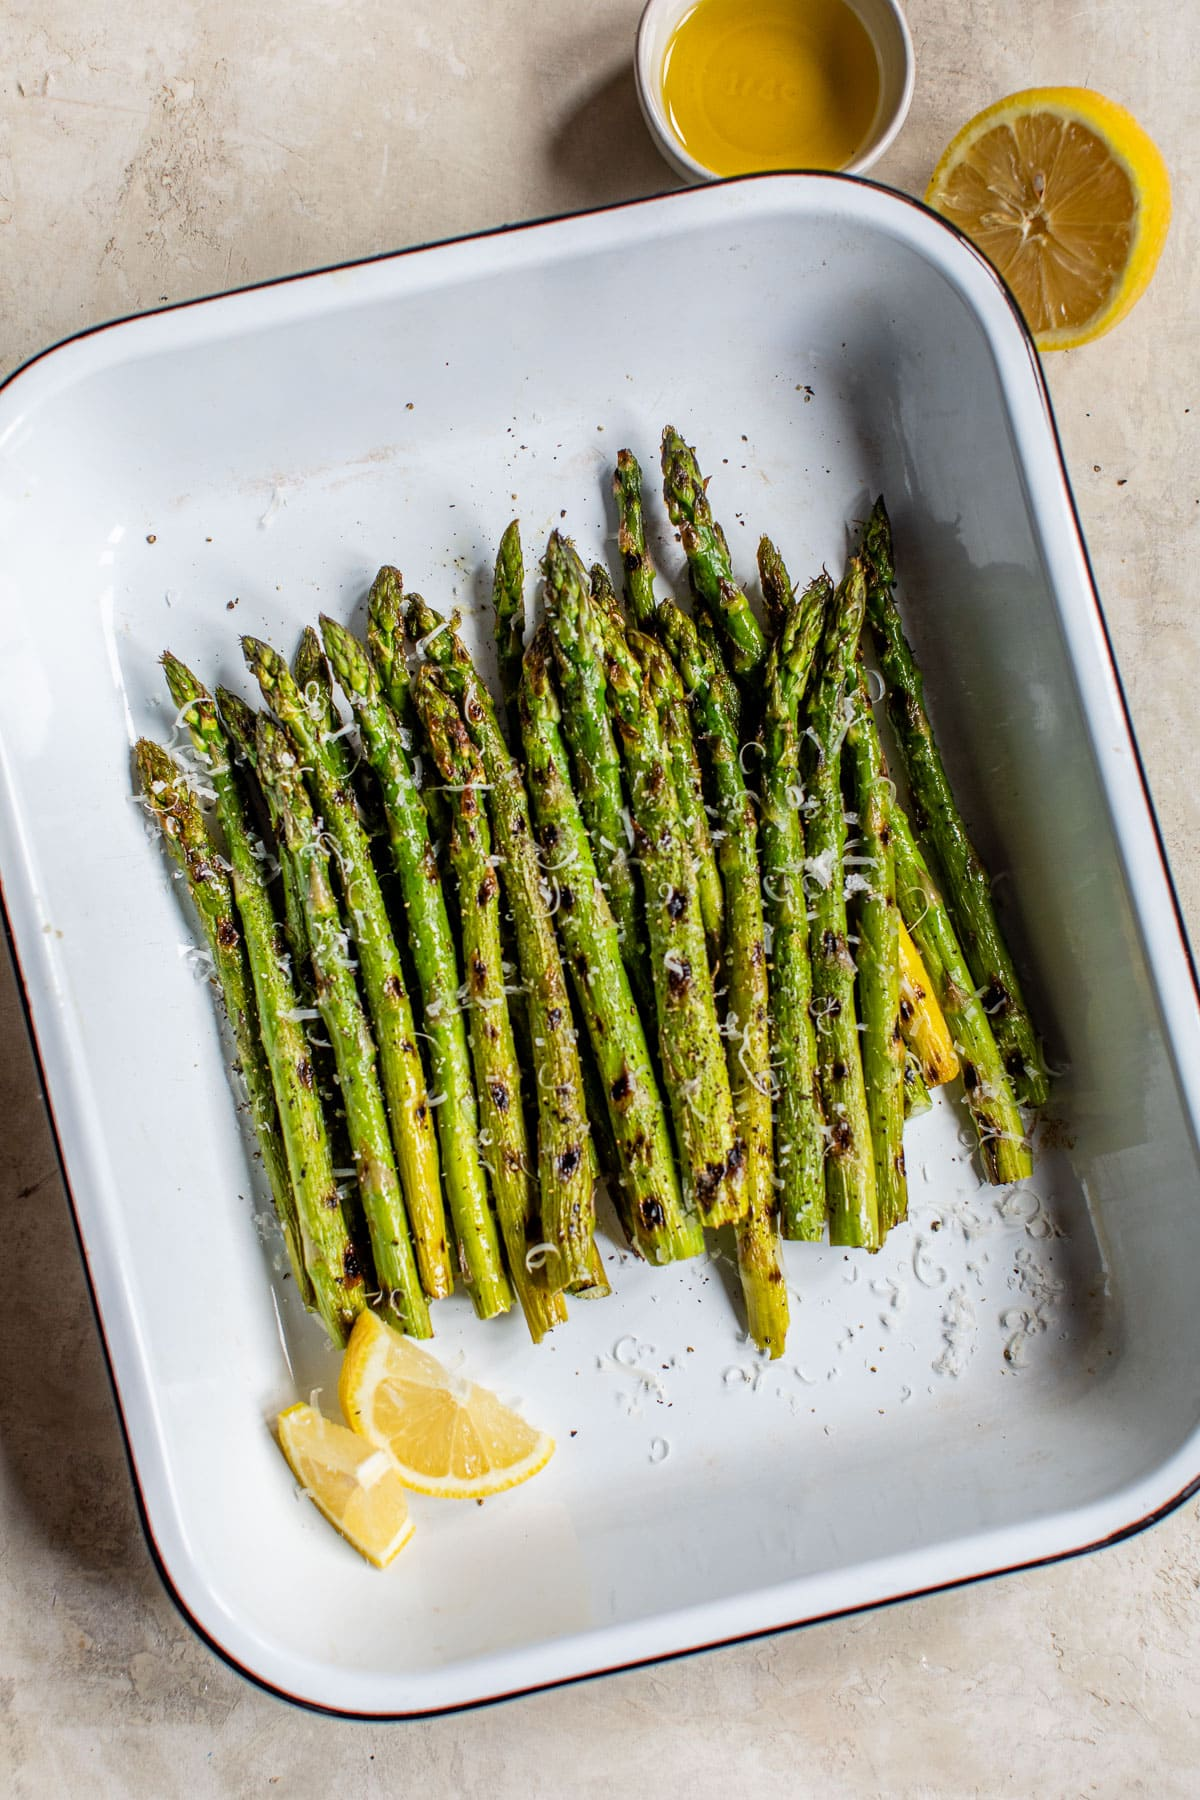 Healthy grilled asparagus in a baking dish